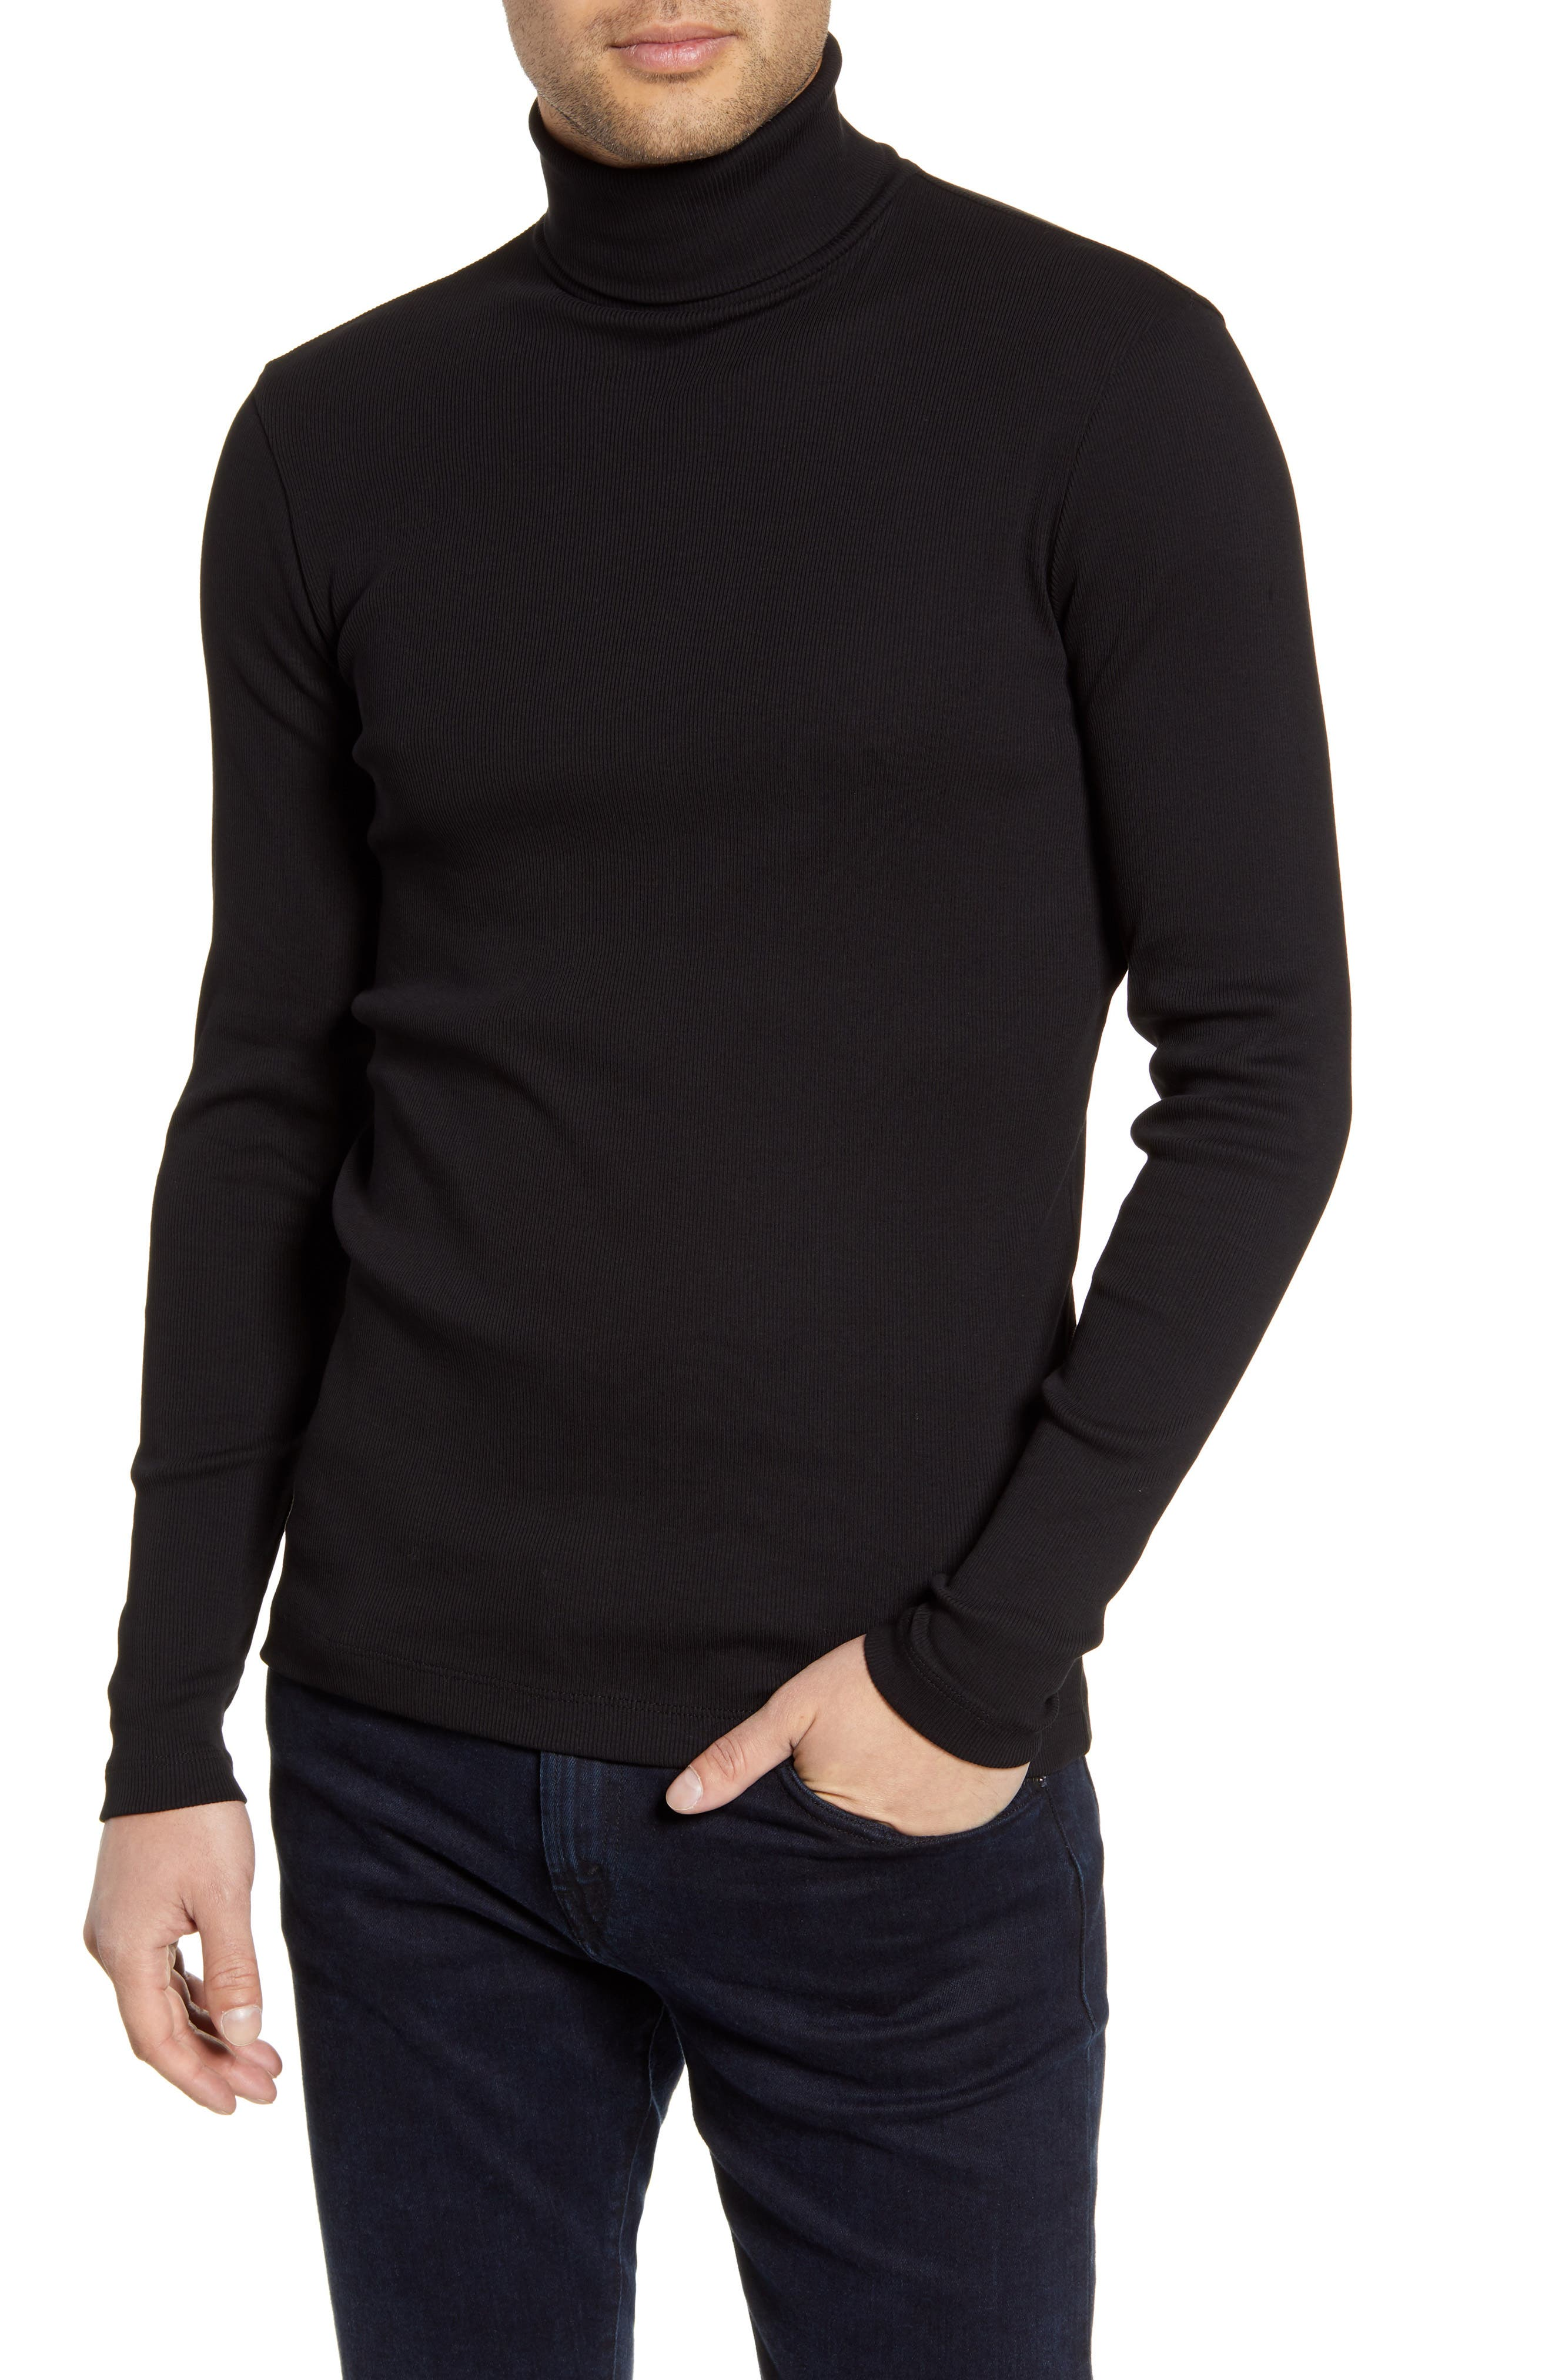 Boss Tops Tenore Cotton Turtleneck Sweater